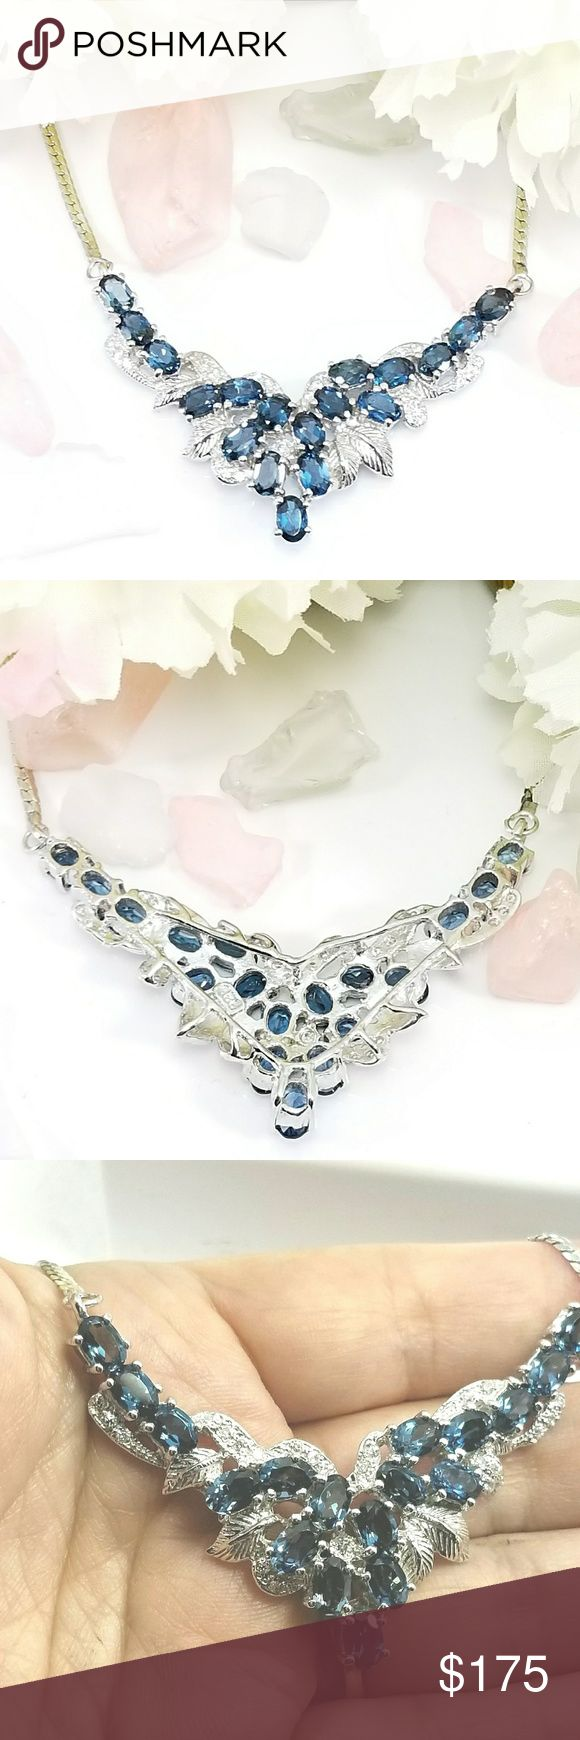 """Sterling Silver London Blue Topaz & CZ Necklace 925 Sterling Silver Genuine Natural Oval London Blue Topaz and Cubic Zirconia 17.75"""" Necklace. New without tags. Beautifully crafted by master Jewelers. Jewelry Necklaces"""